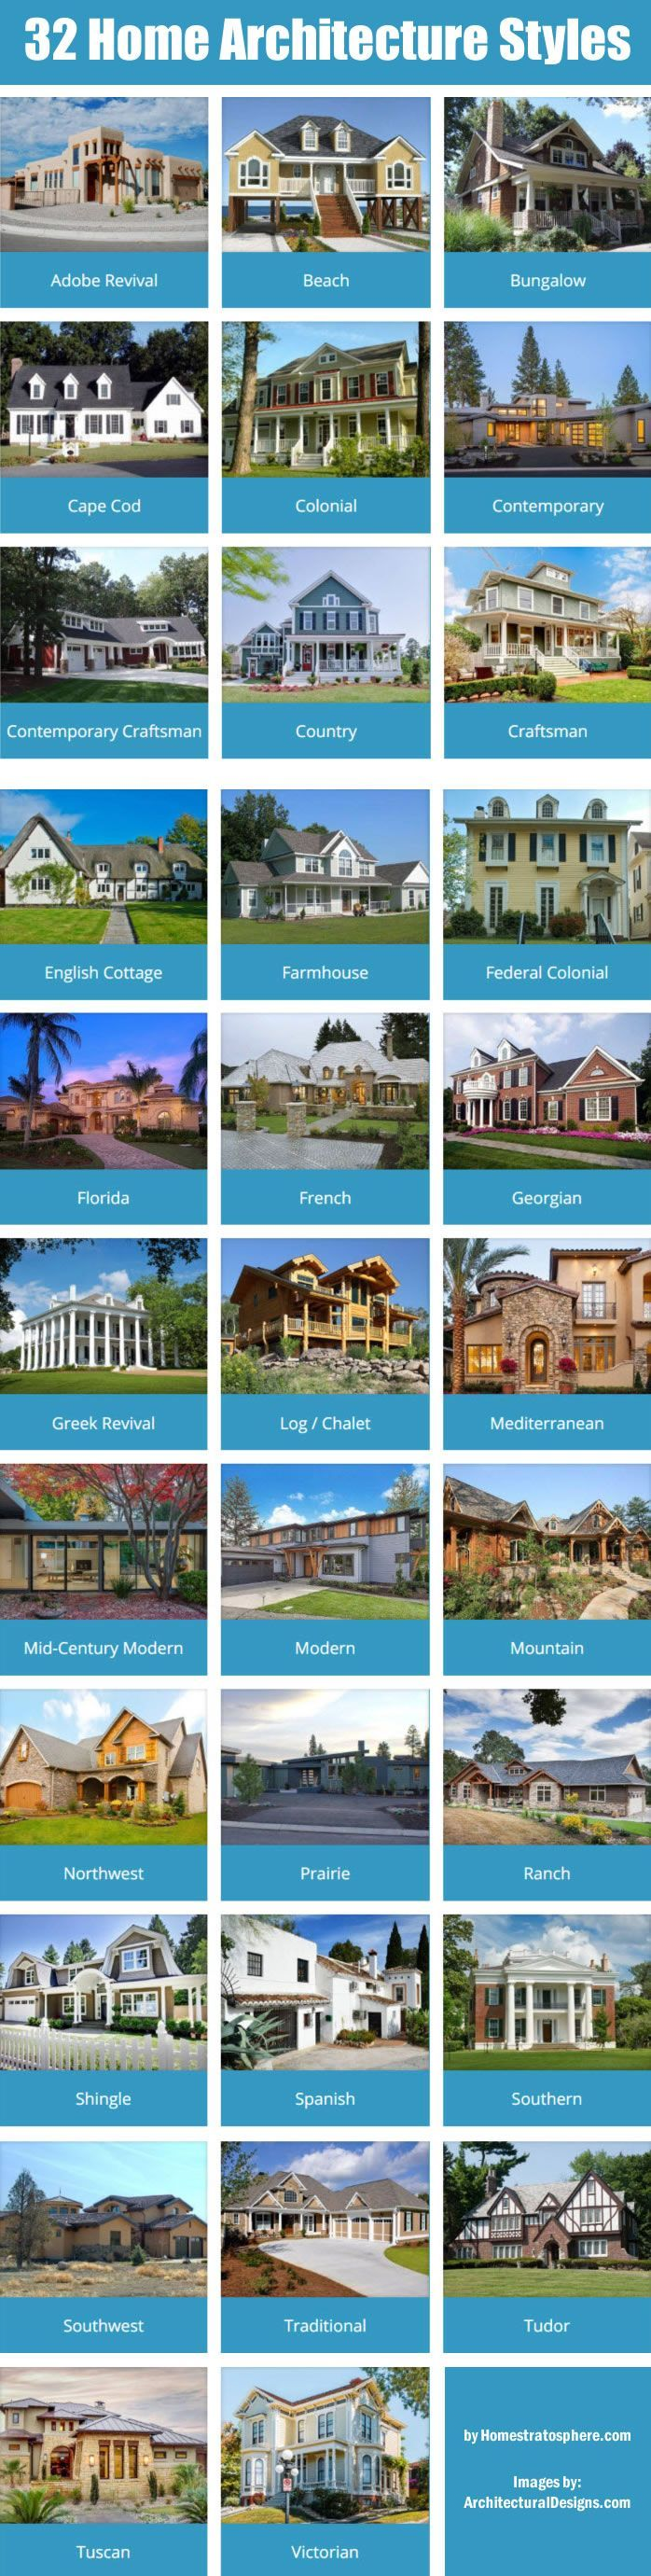 33 Types Of Architectural Styles For The Home Modern Craftsman Etc Home Architecture Styles House Architecture Styles House Styles